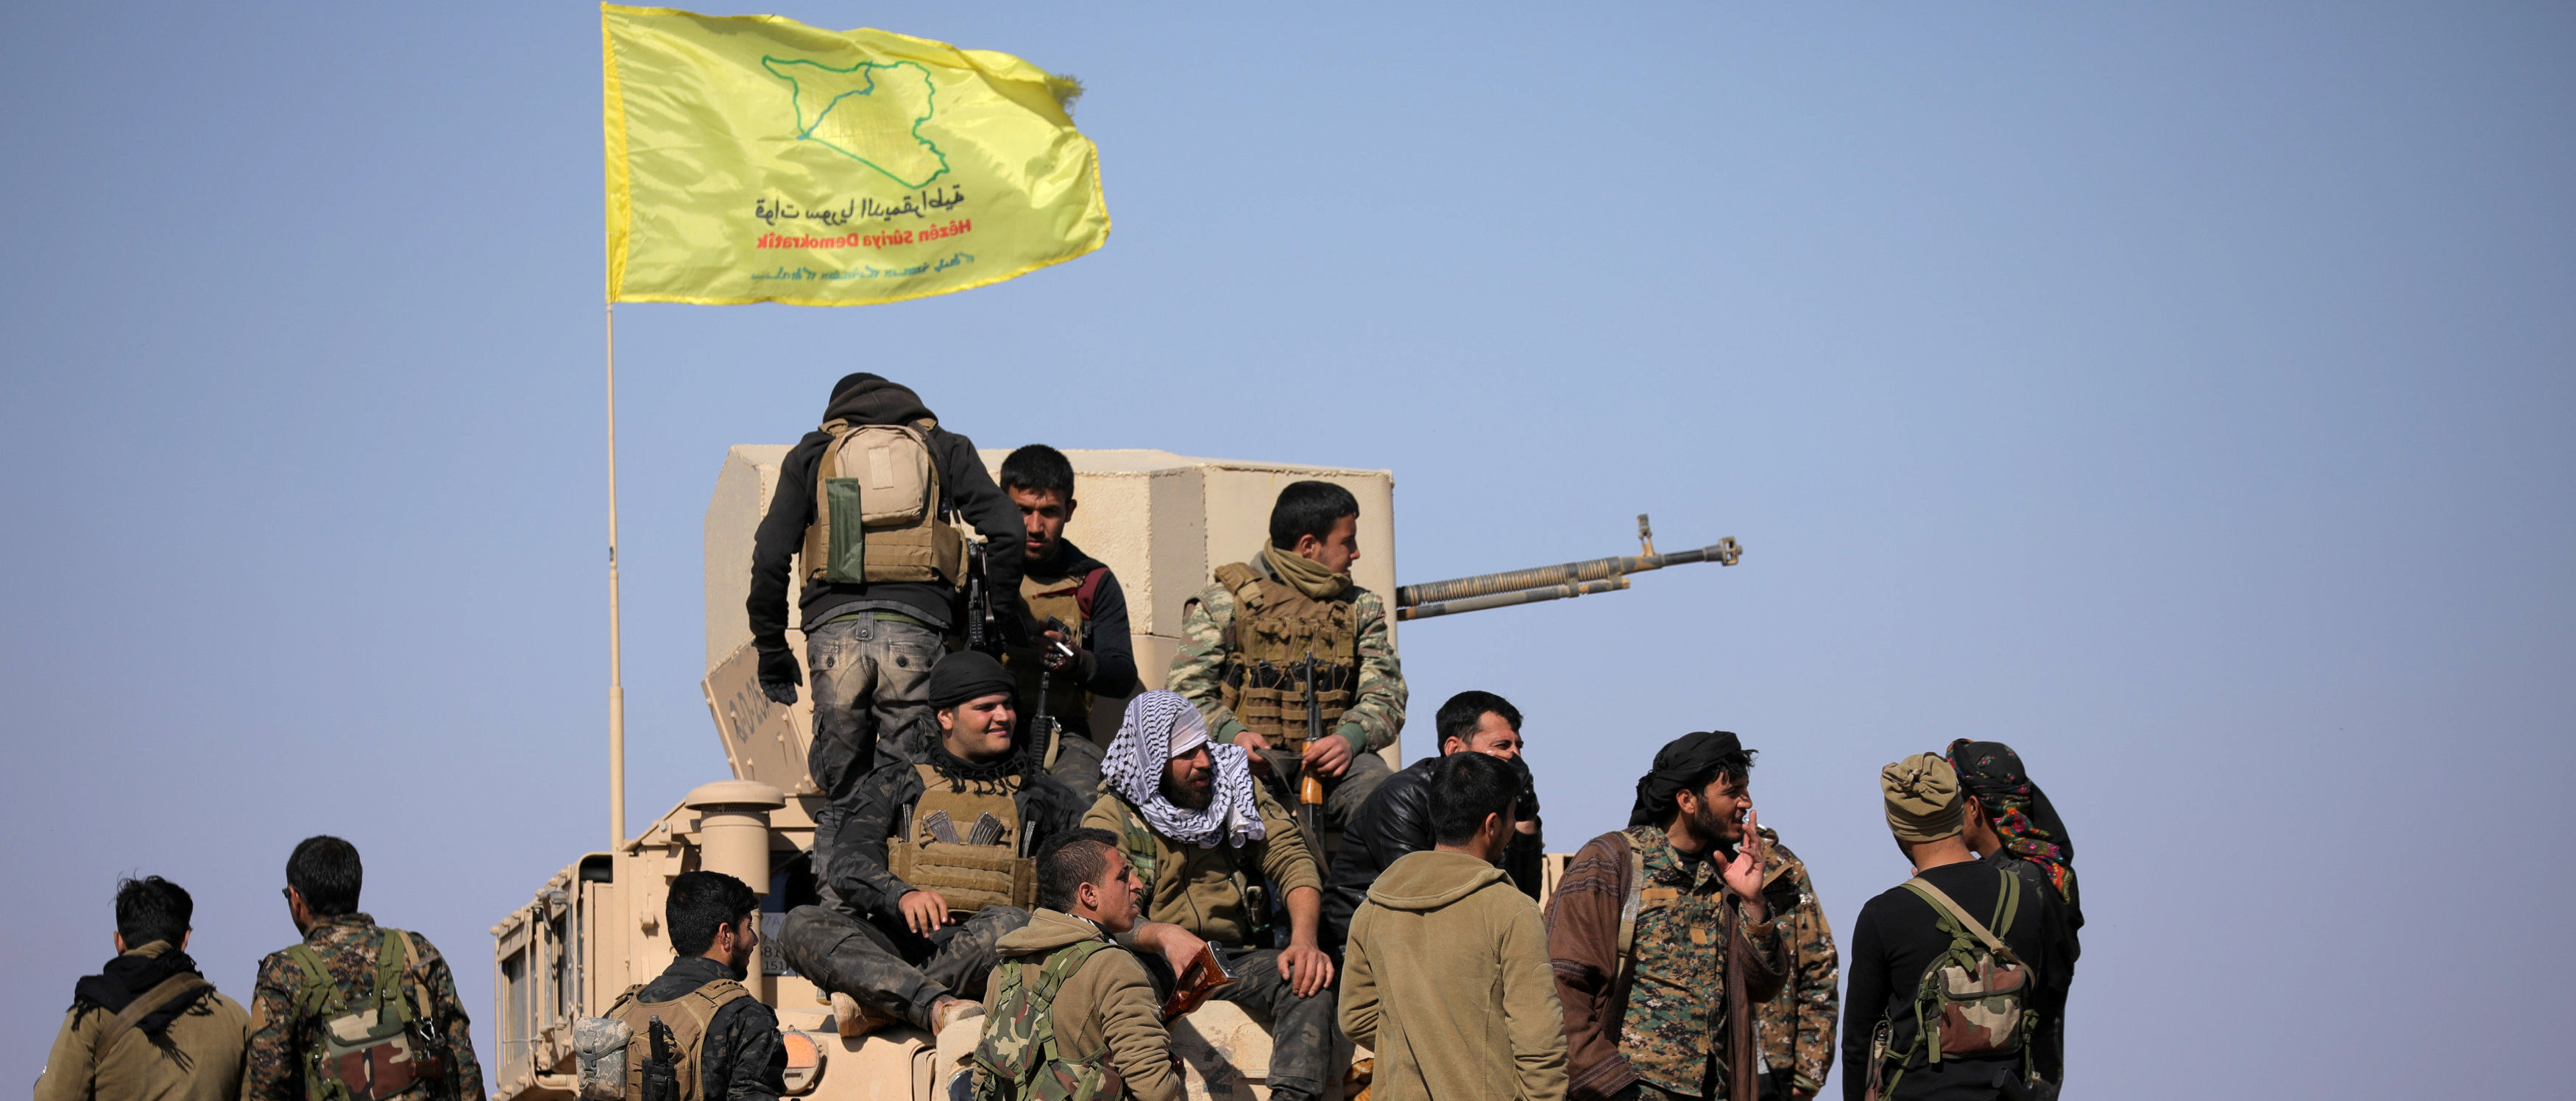 Members of Syrian Democratic Forces (SDF) stand together near Baghouz, Deir Al Zor province, Syria February 12, 2019. Picture taken February 12, 2019. REUTERS/ Rodi Said - RC1DBB5F55C0